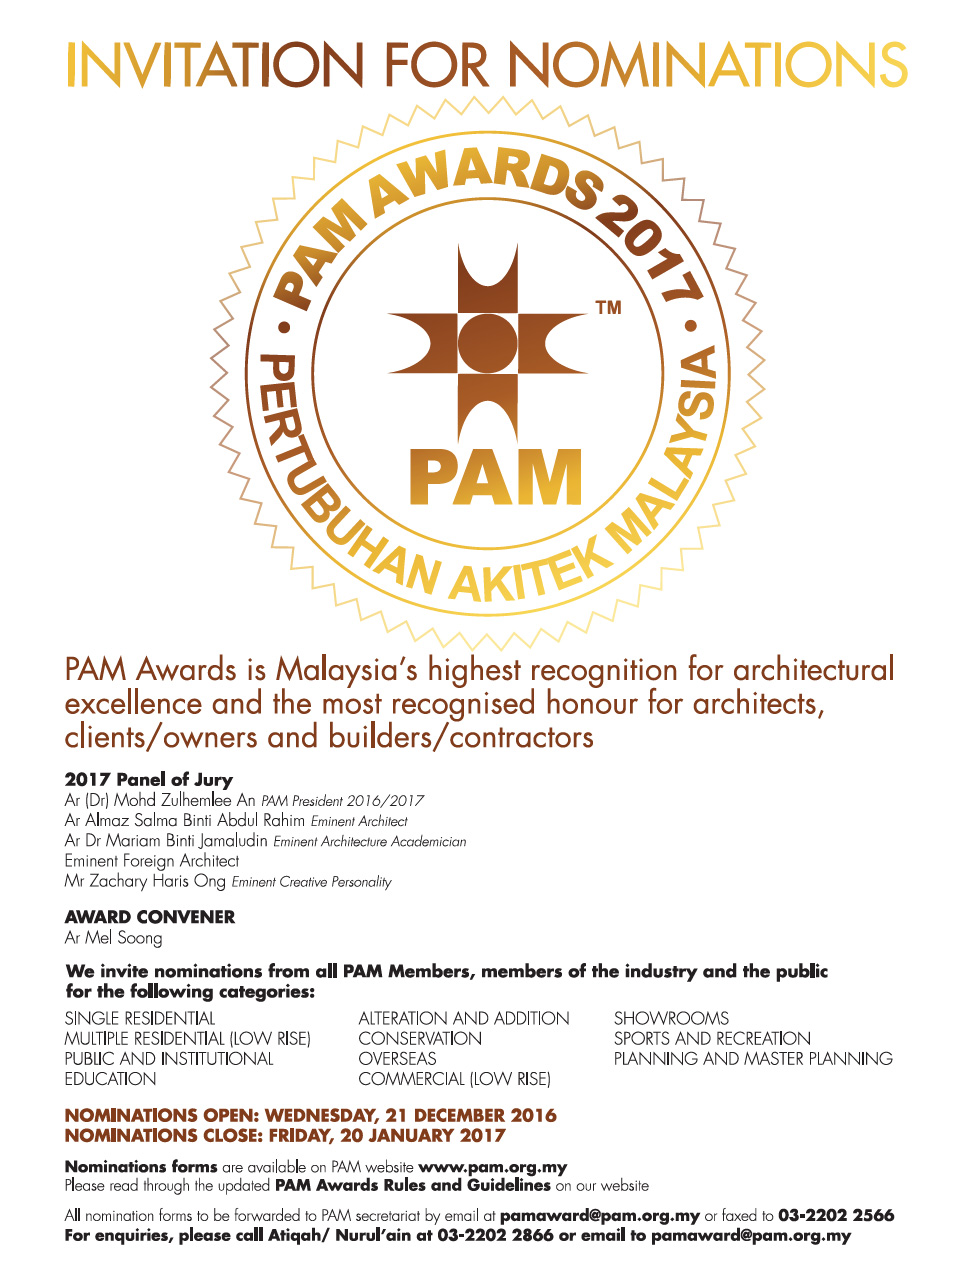 pam awards 2017